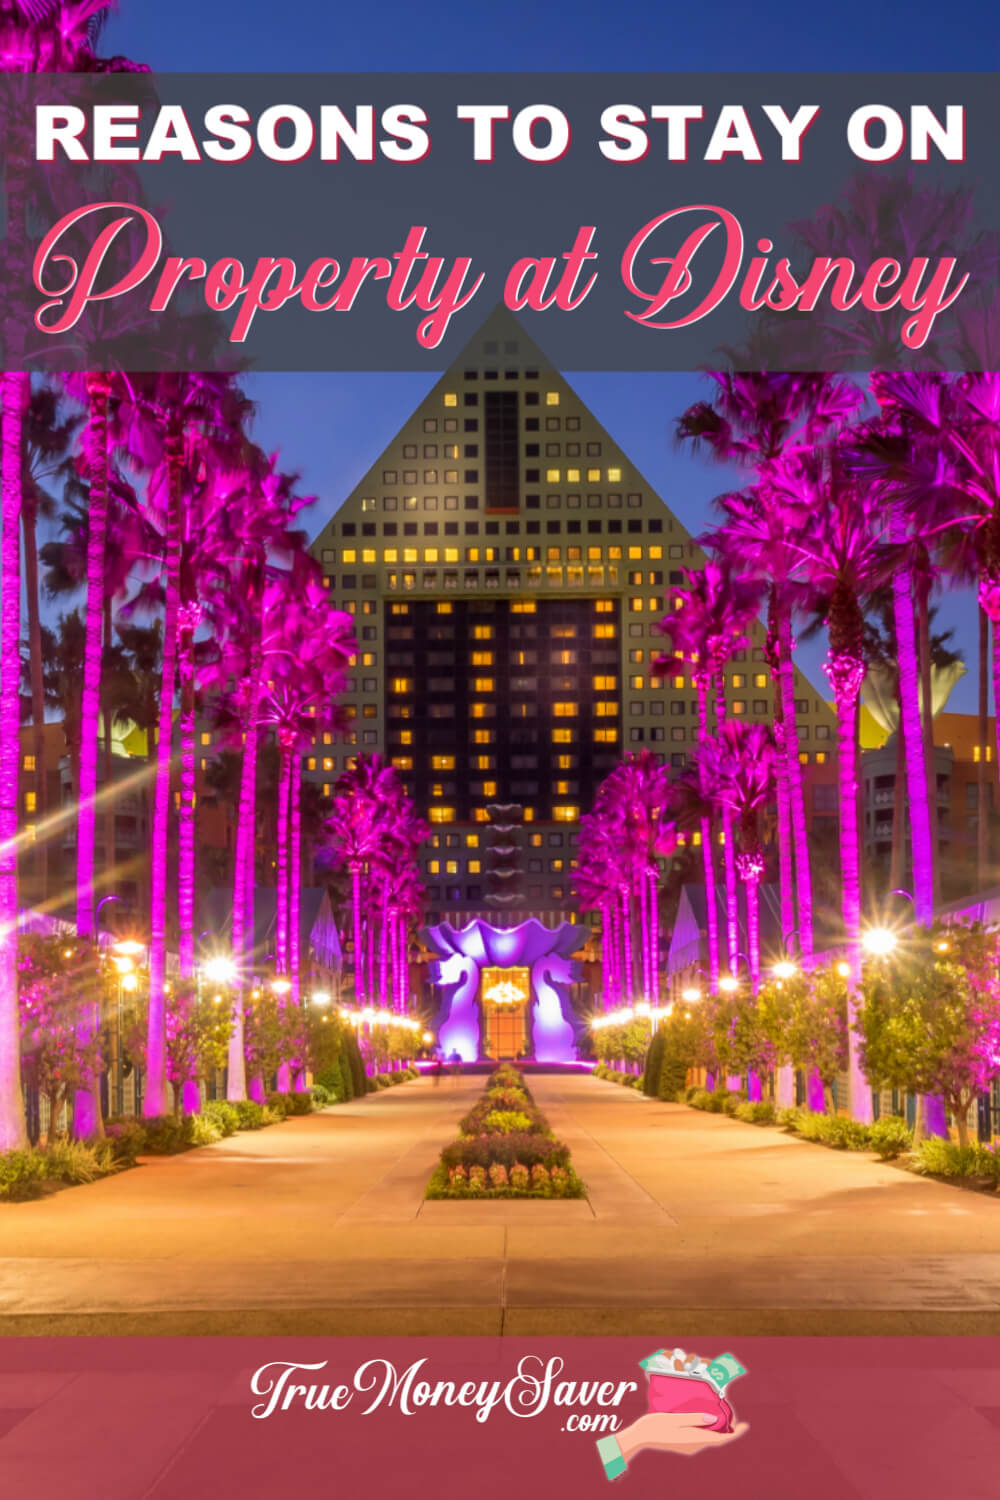 If you\'ve never stayed in a Disney resort for a vacation, here\'s why I think it\'s worth it! #disneyworld #magicalvacations #savingmoney #truemoneysaver #disneyproperty #disneyresorts #disneypolynesianresort #disneybeachclubresort #disneycontemporaryresort #disneyboardwalkresort #disneybaylaketower #disneywildernesslodge #disneyfortwilderness  #disneyanimalkingdomlodge